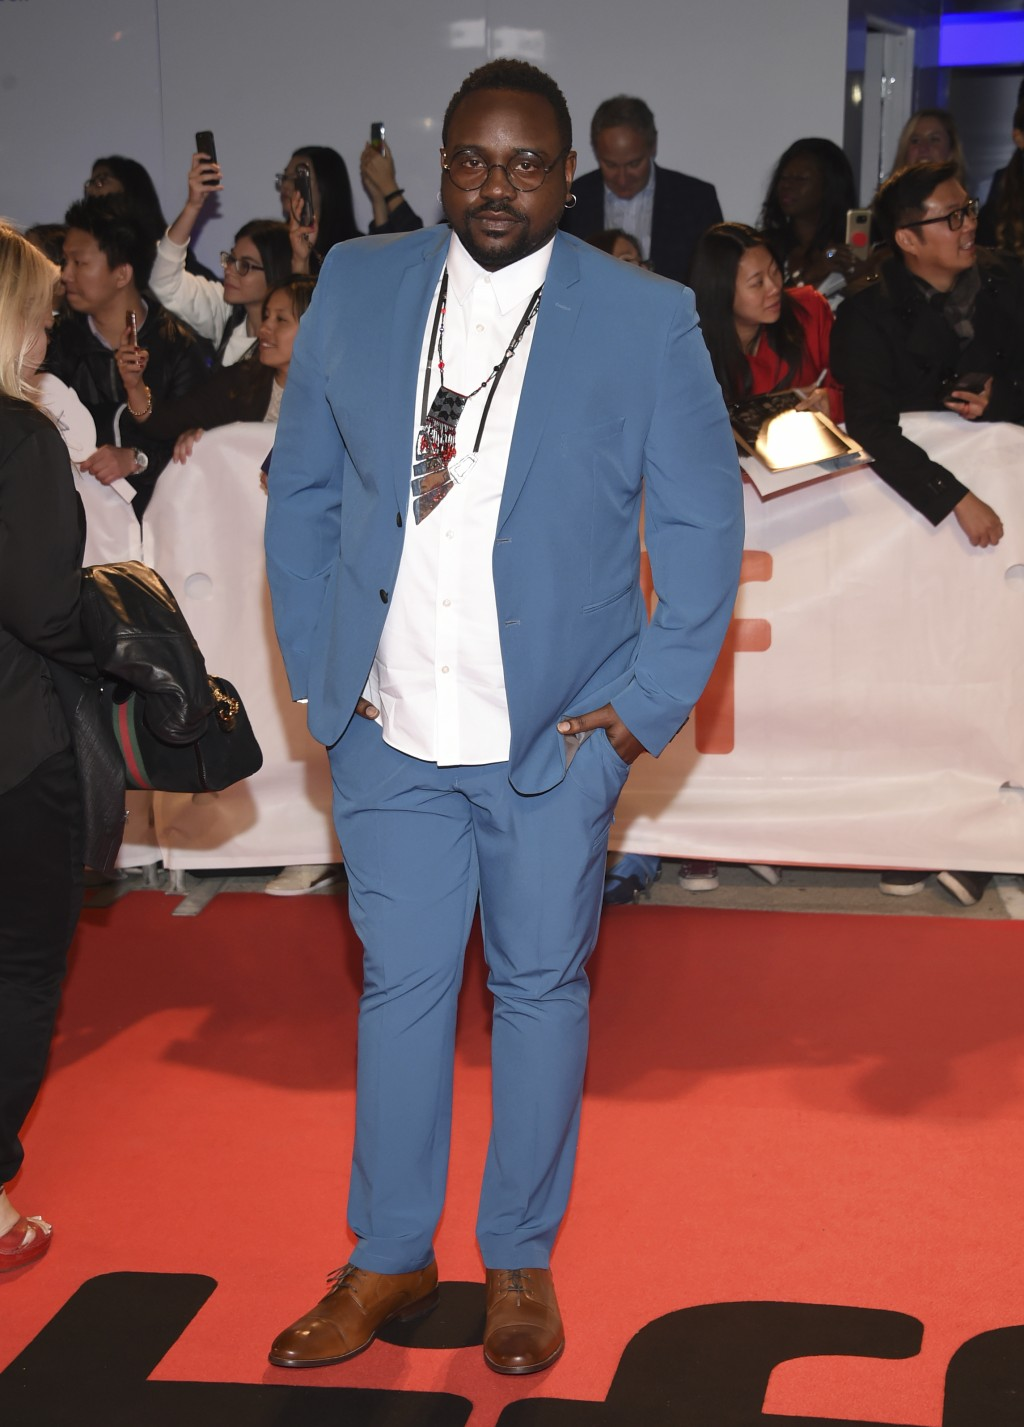 """Brian Tyree Henry attends the premiere for """"Widows"""" on day 3 of the Toronto International Film Festival at Roy Thomson Hall on Saturday, Sept. 8, 2018"""